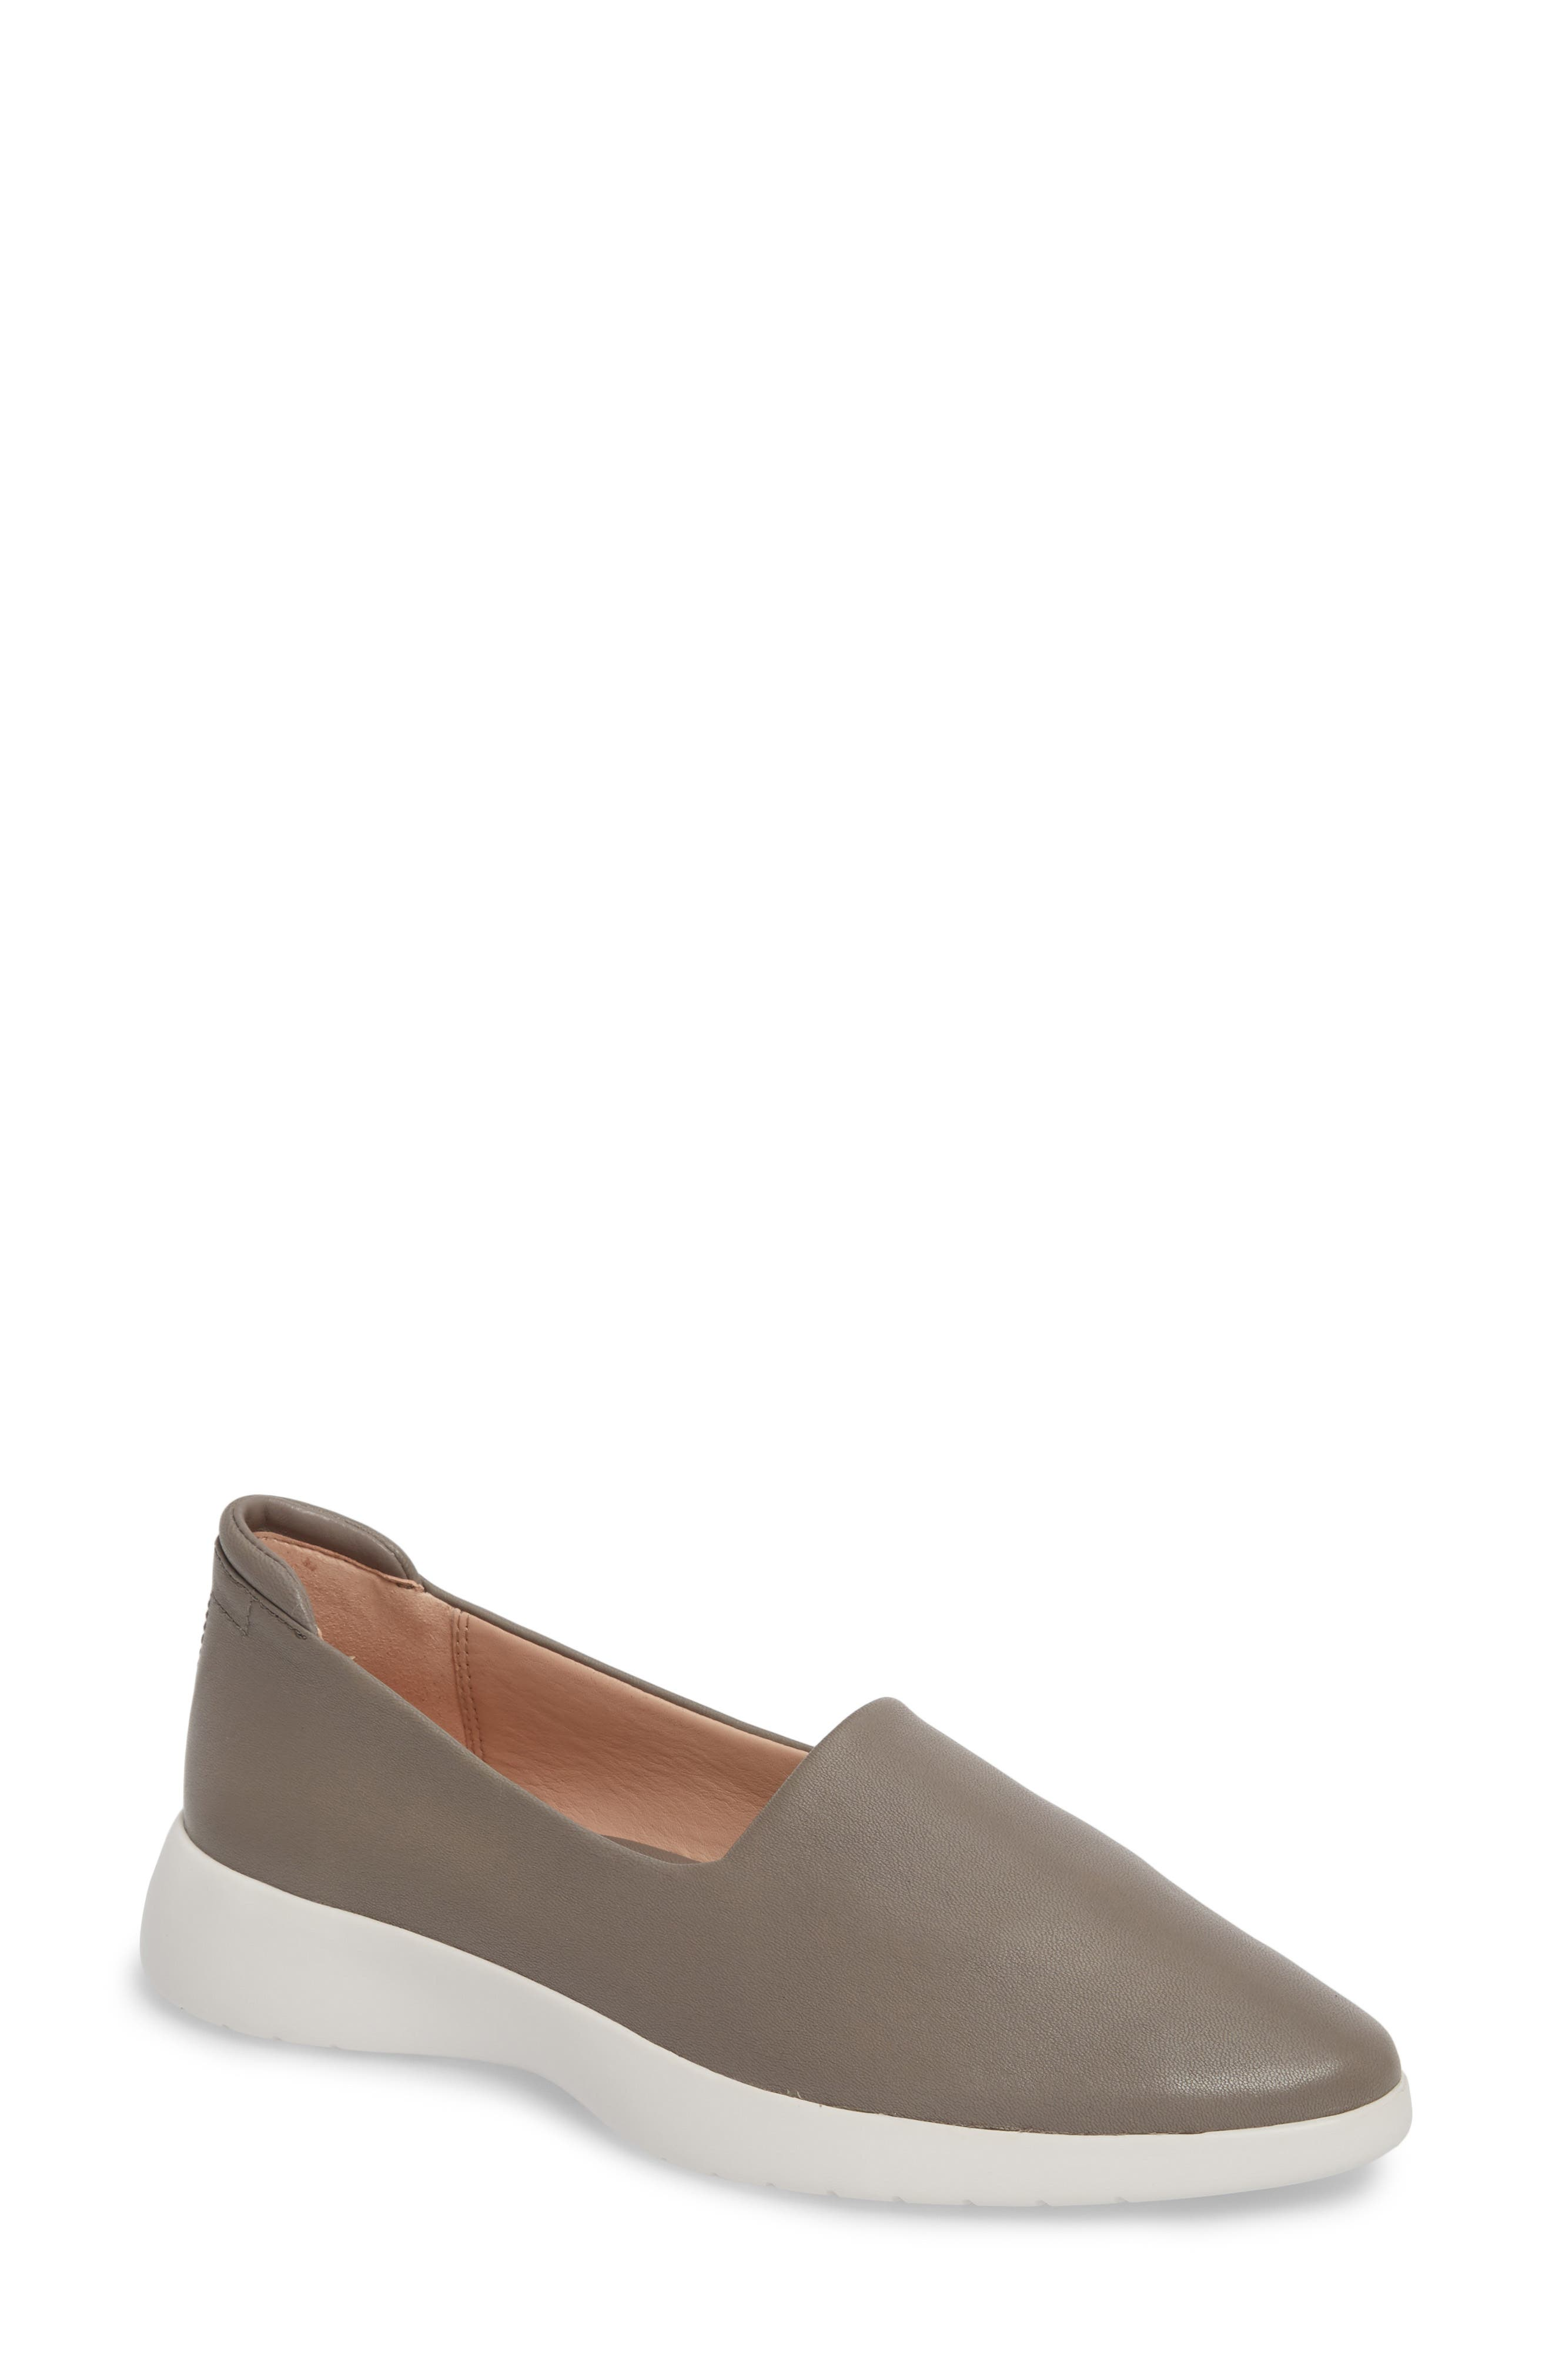 Darla Slip-On Sneaker,                             Main thumbnail 1, color,                             Grey Leather